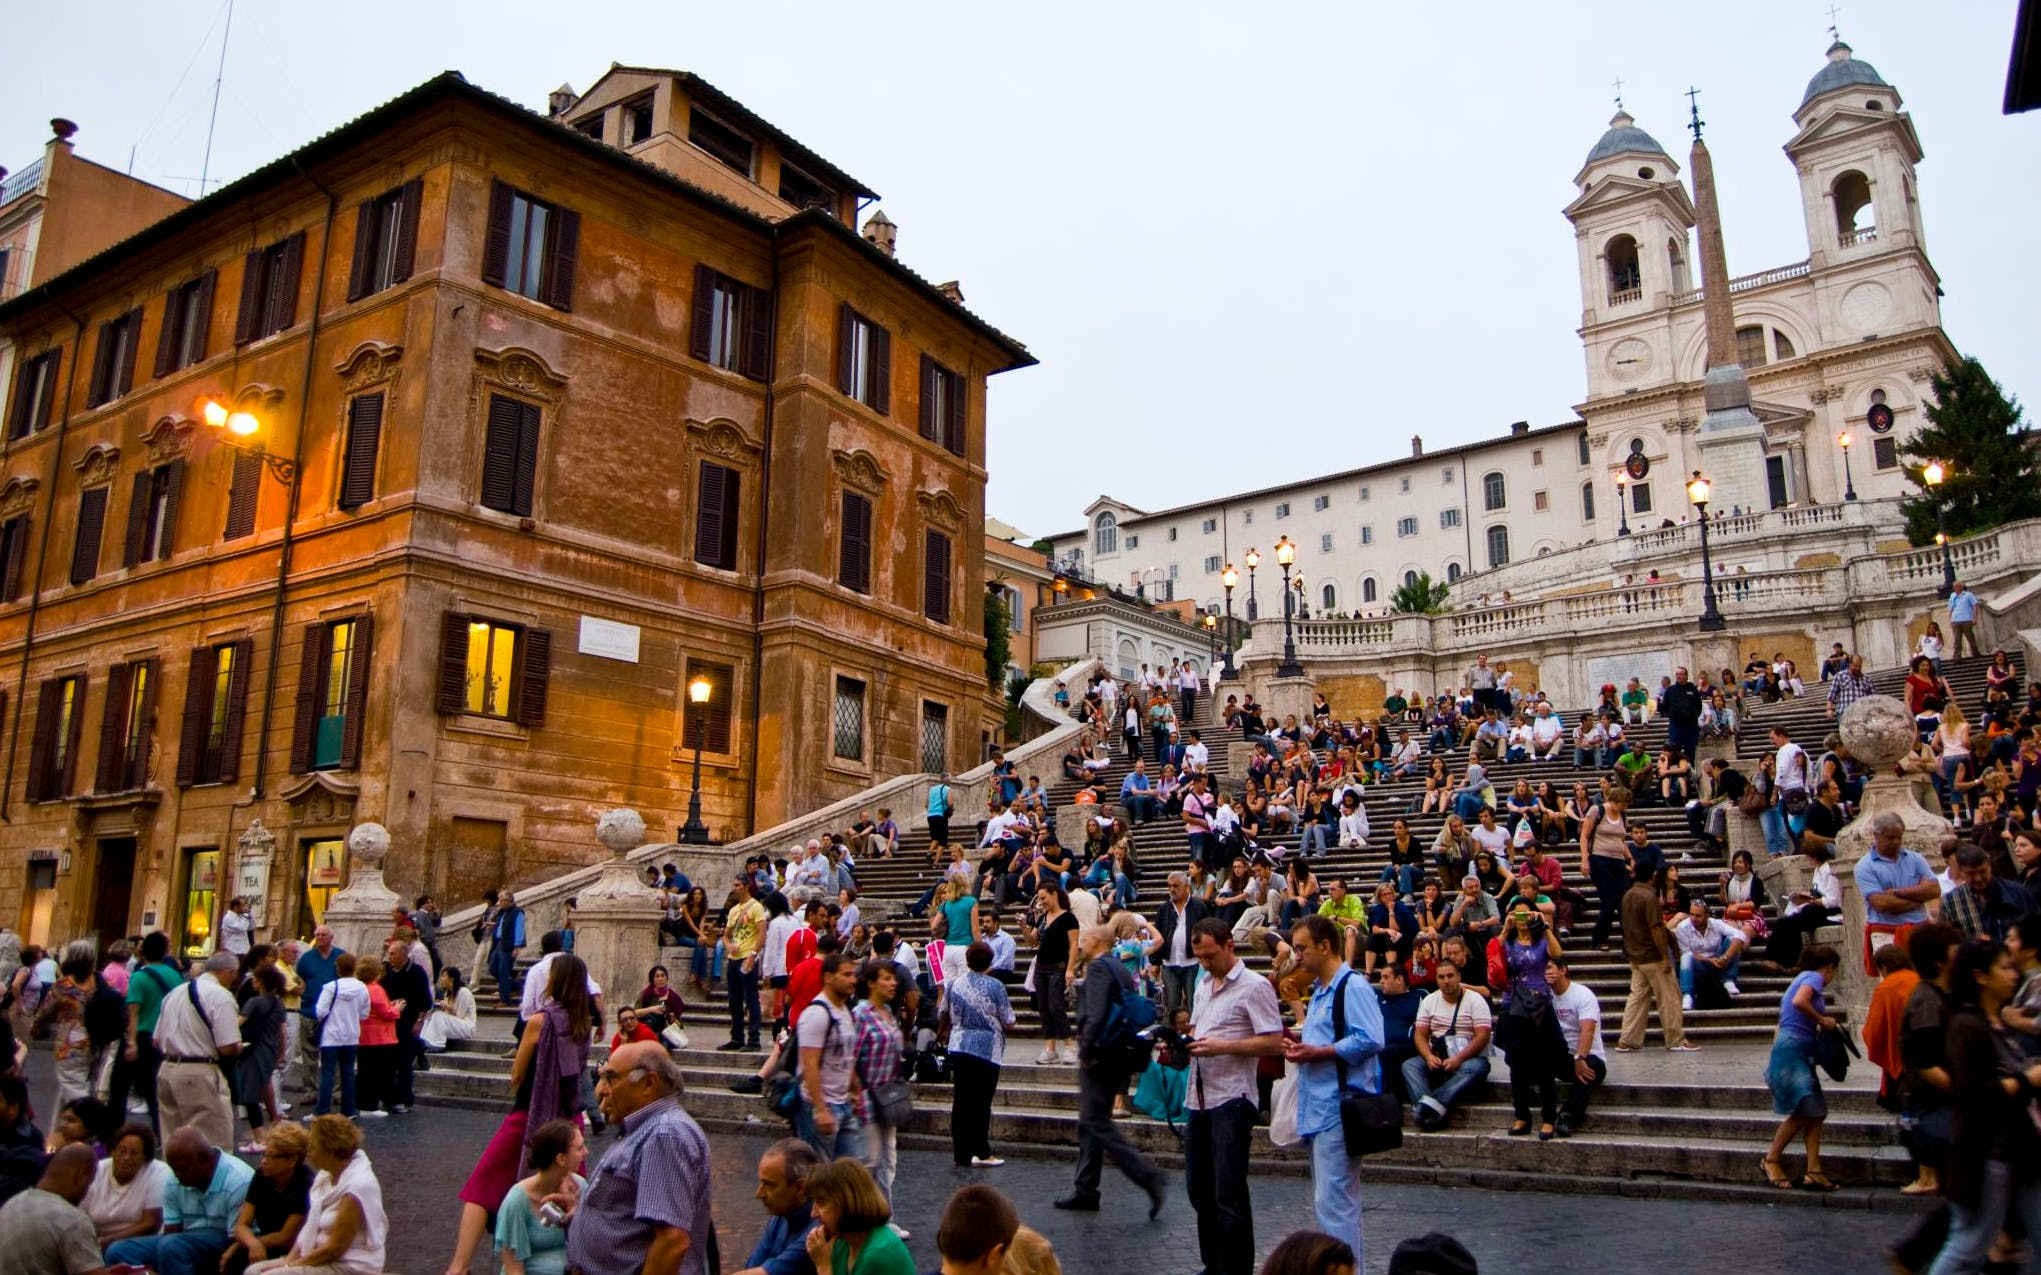 spanish steps to vicus caprarius underground walking tour - express entry-1